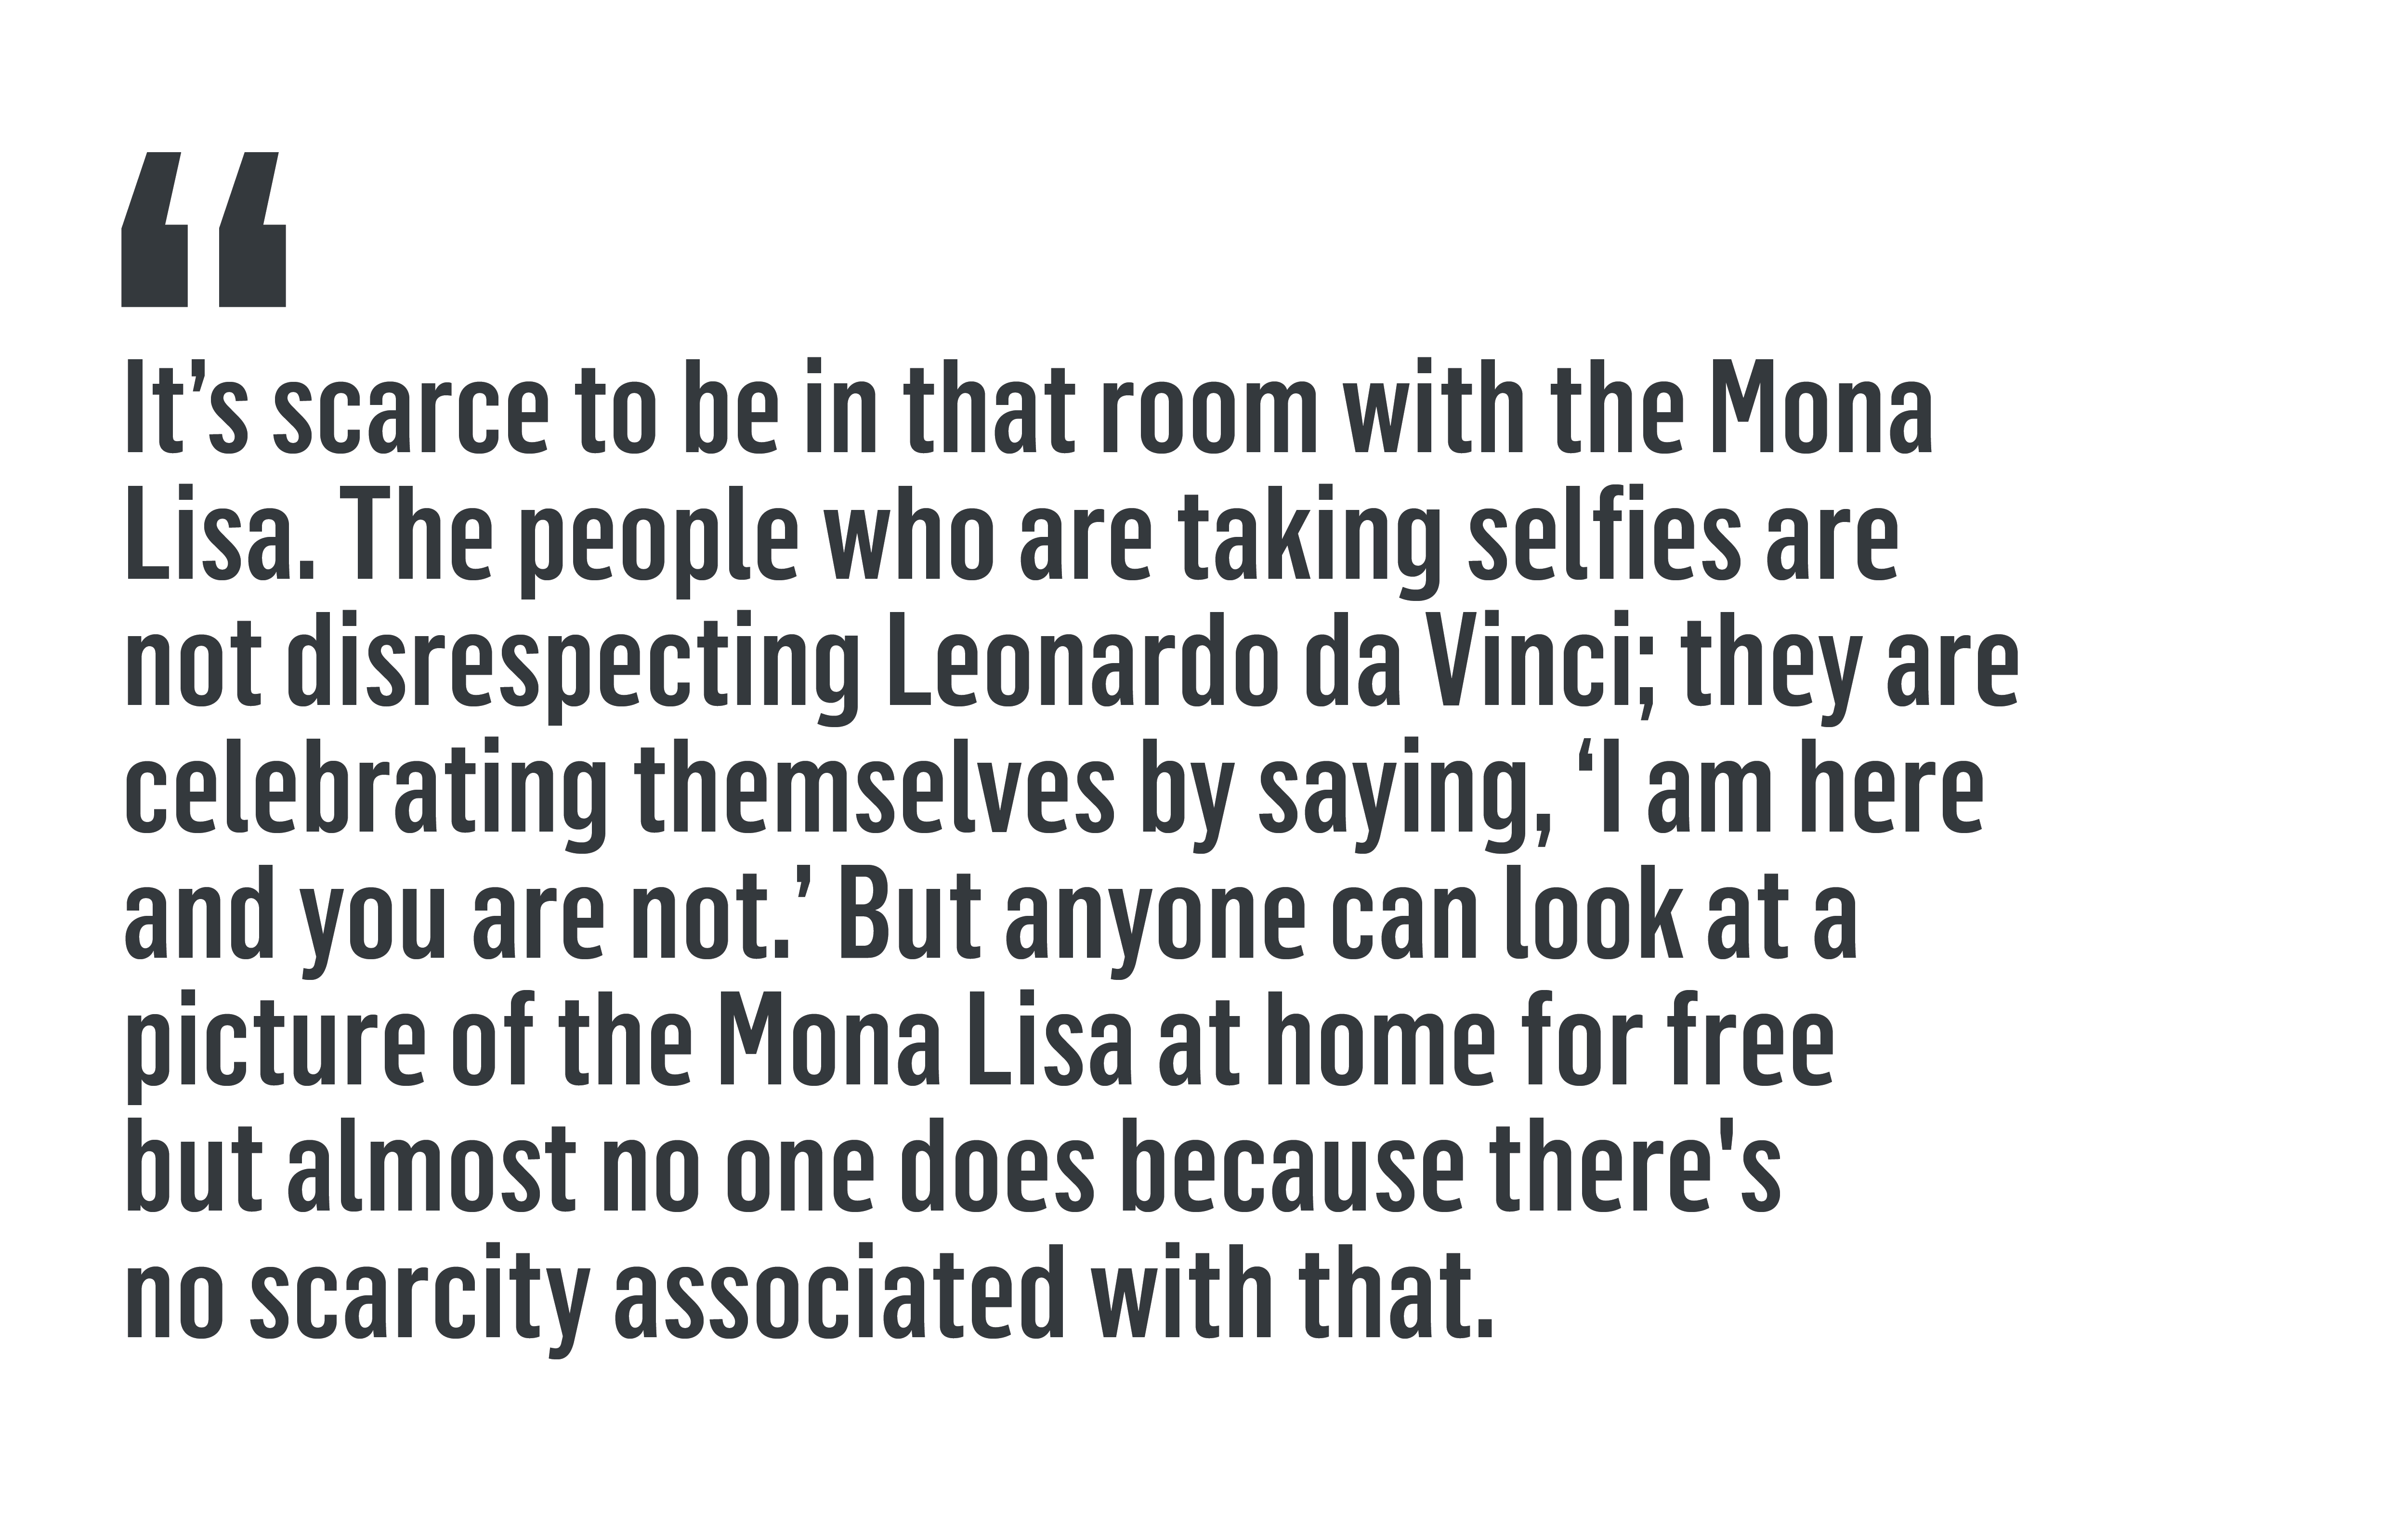 """It's scarce to be in that room with the Mona Lisa. The people who are taking selfies are not disrespecting Leonardo da Vinci; they are celebrating themselves by saying, 'I am here and you are not.' But anyone can look at a picture of the Mona Lisa at home for free but almost no one does because there's no scarcity associated with that."""